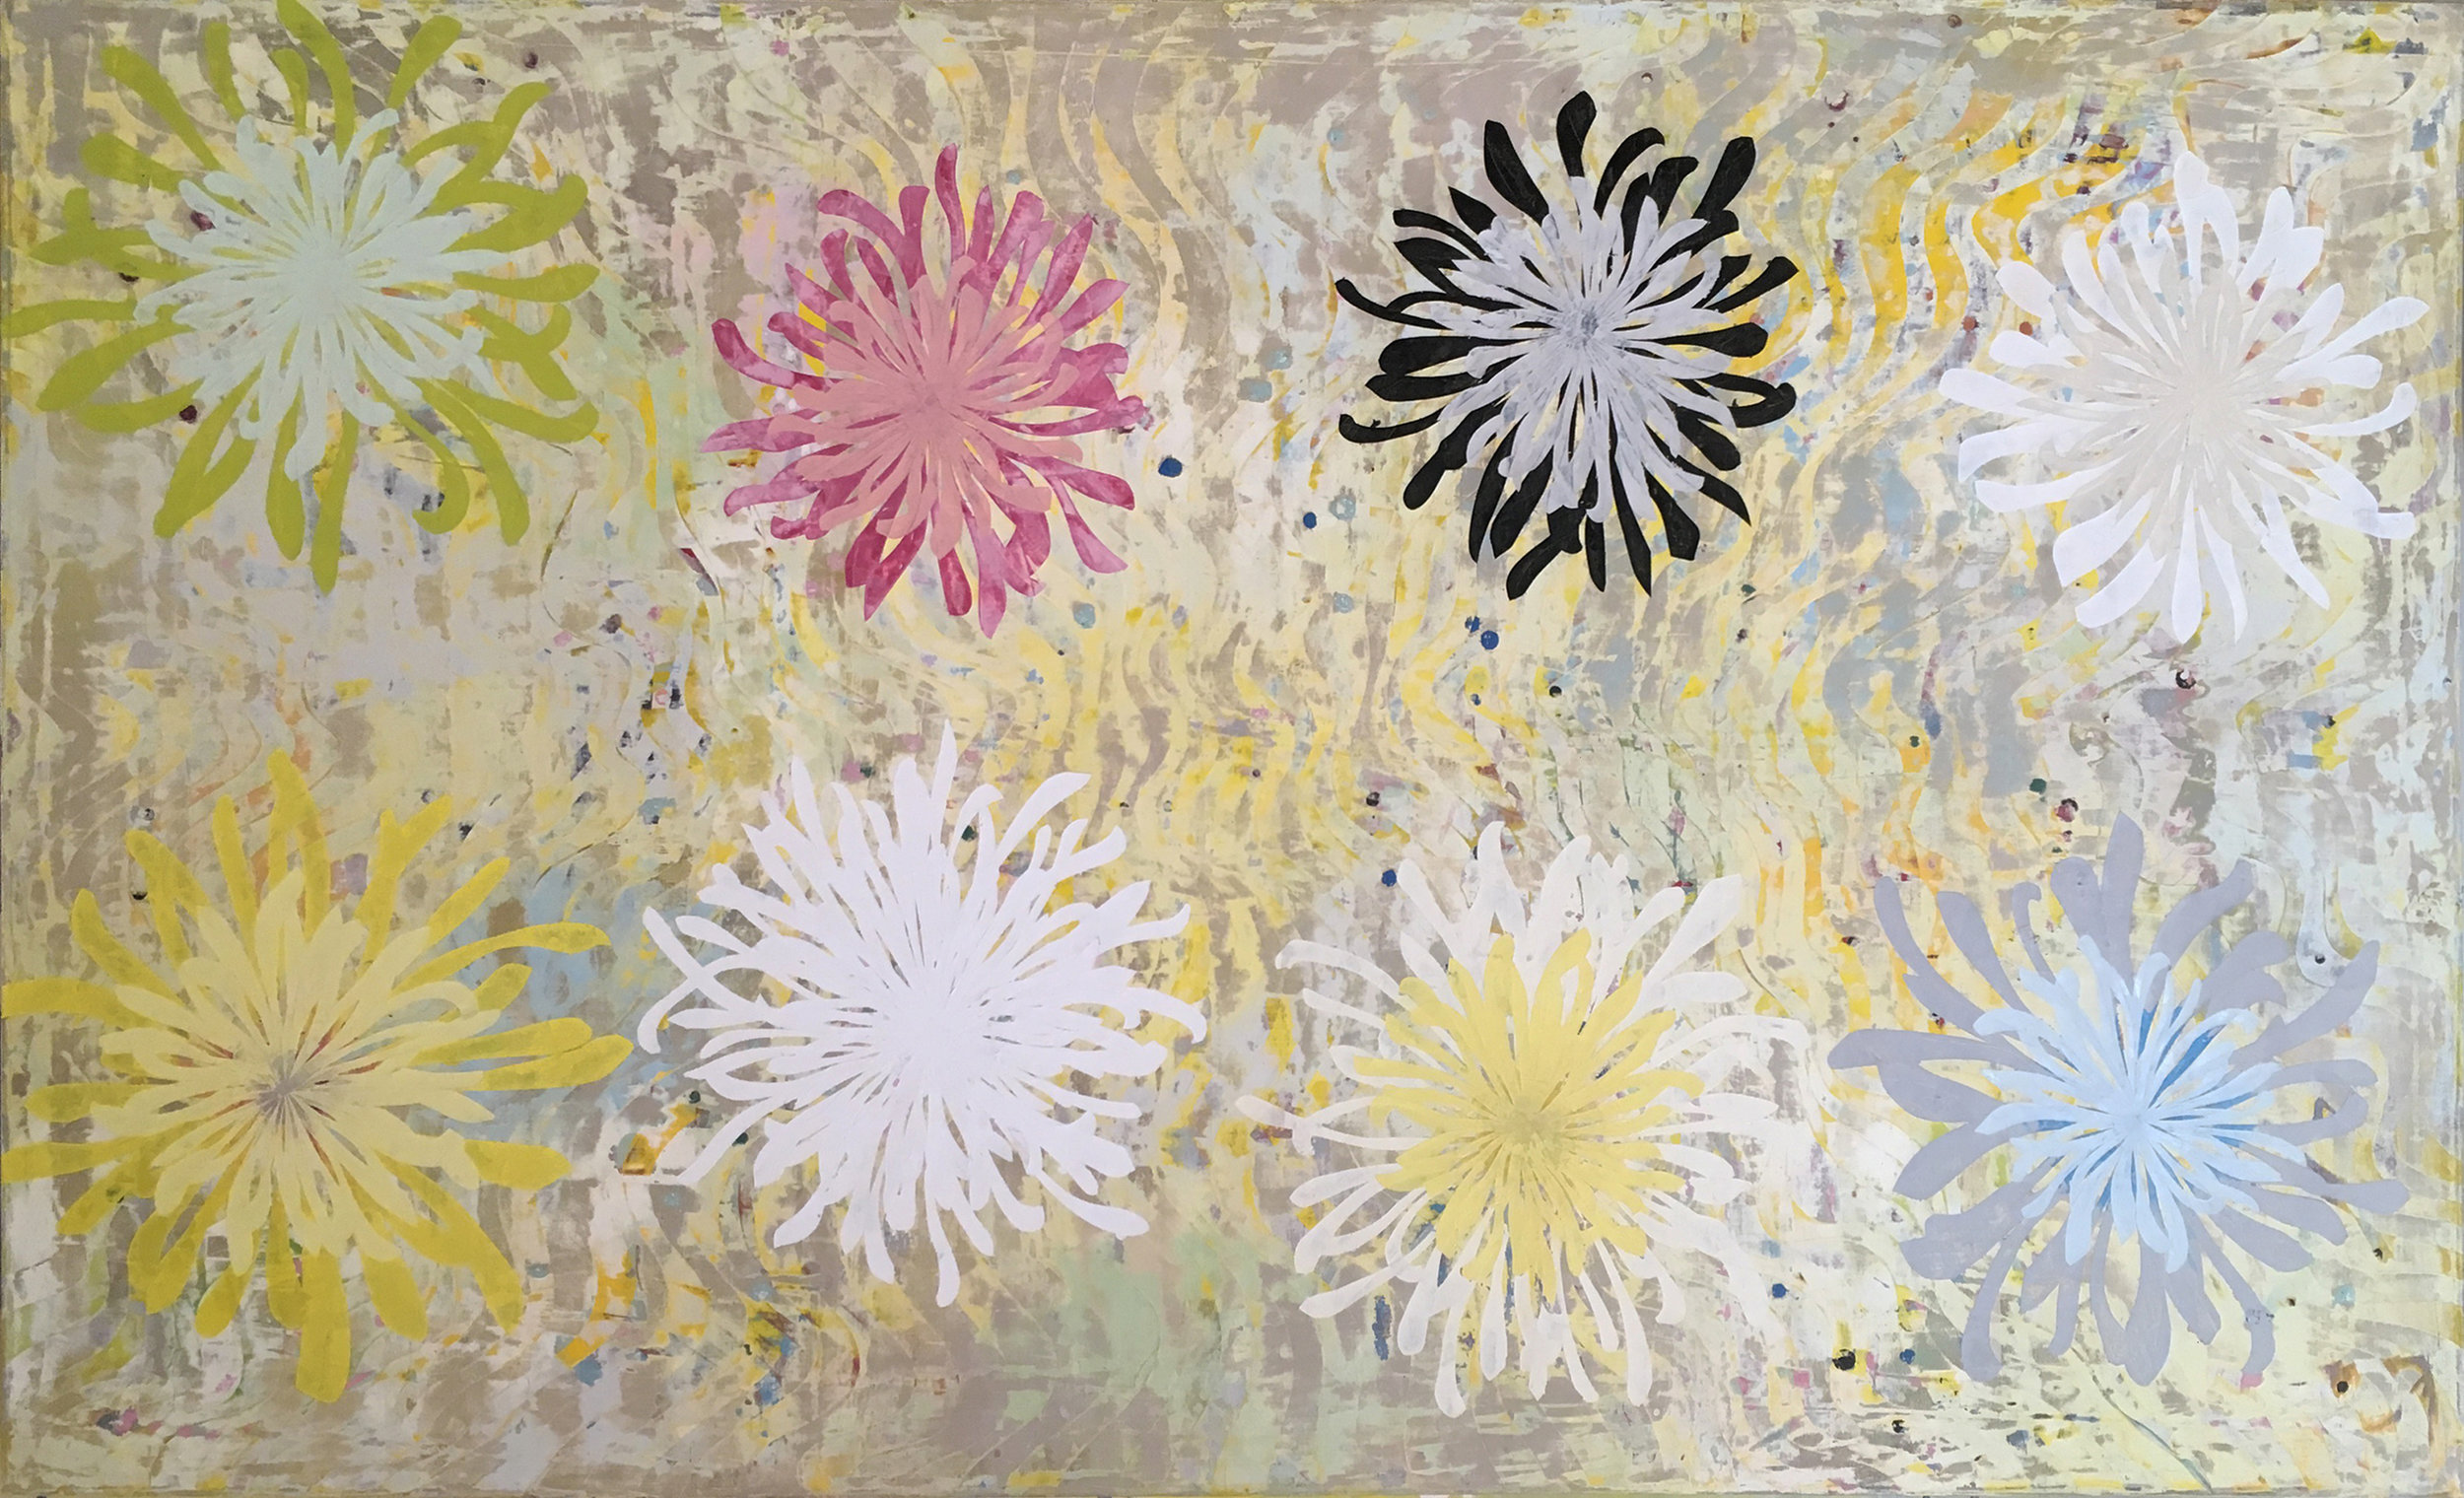 Chrysanthemum Tapestry, 2018, oil on canvas, 51 x 84 in, $15,500